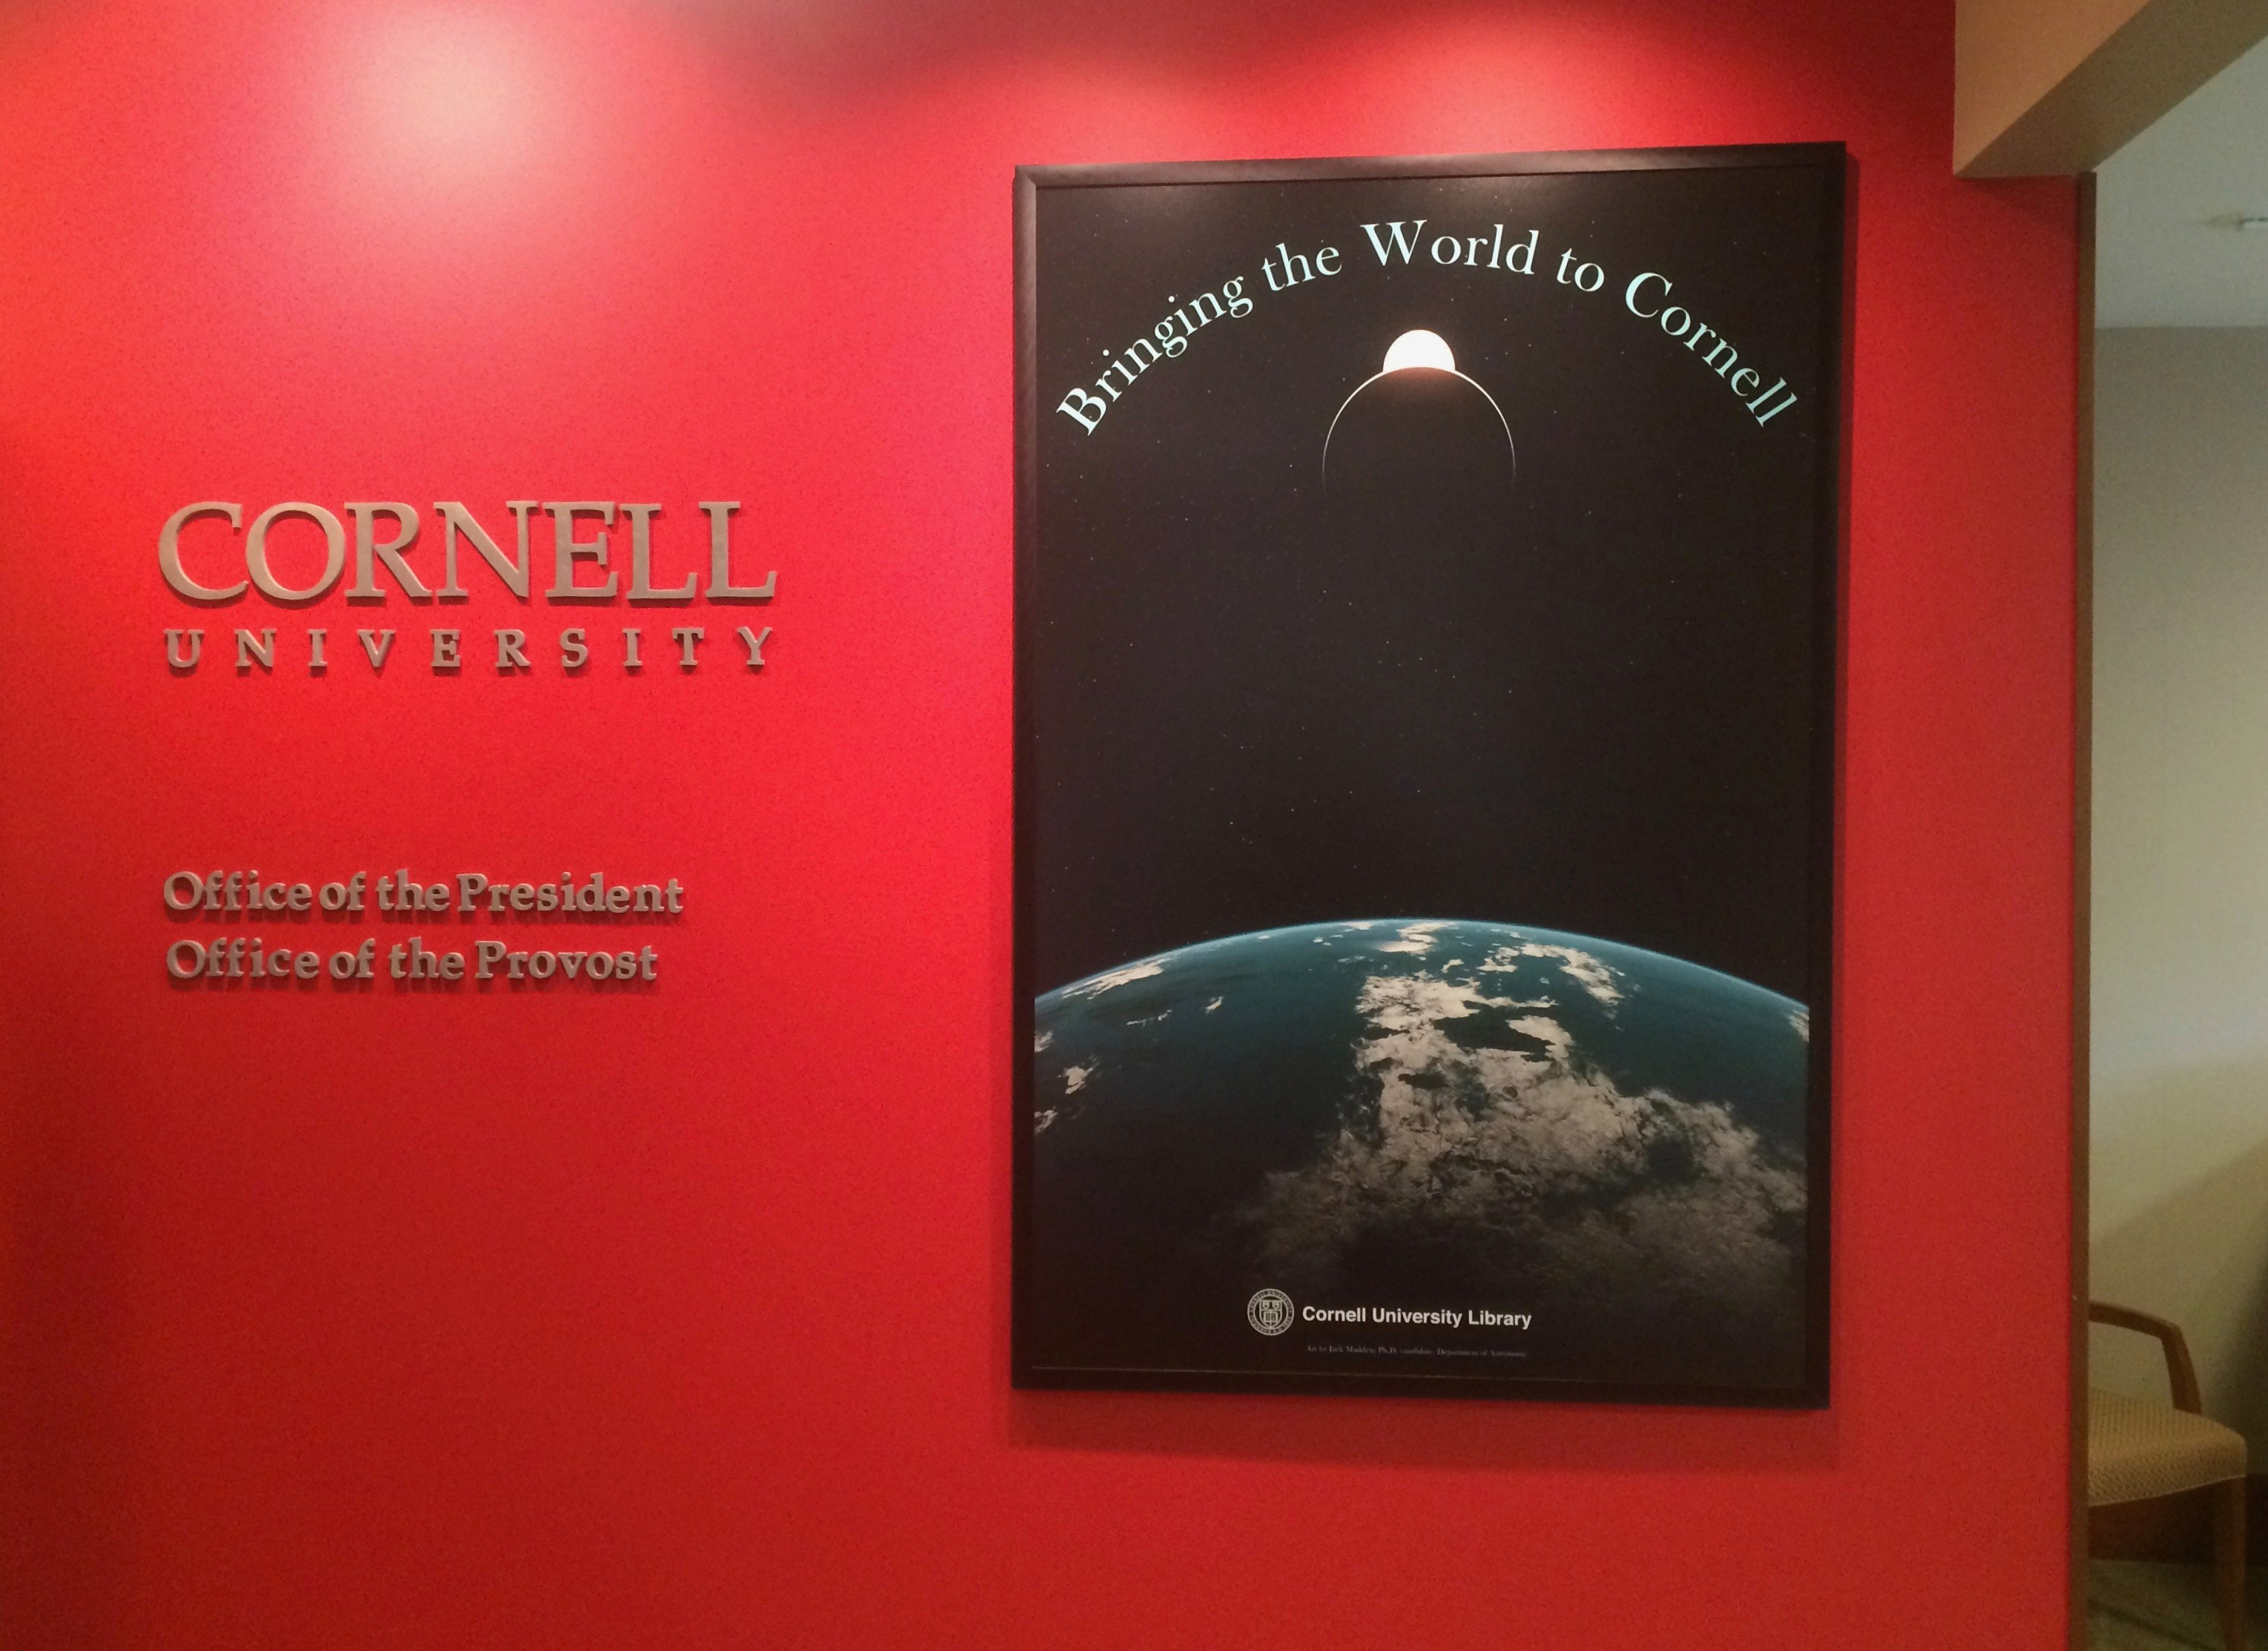 My work hung outside the President's office at Cornell University.